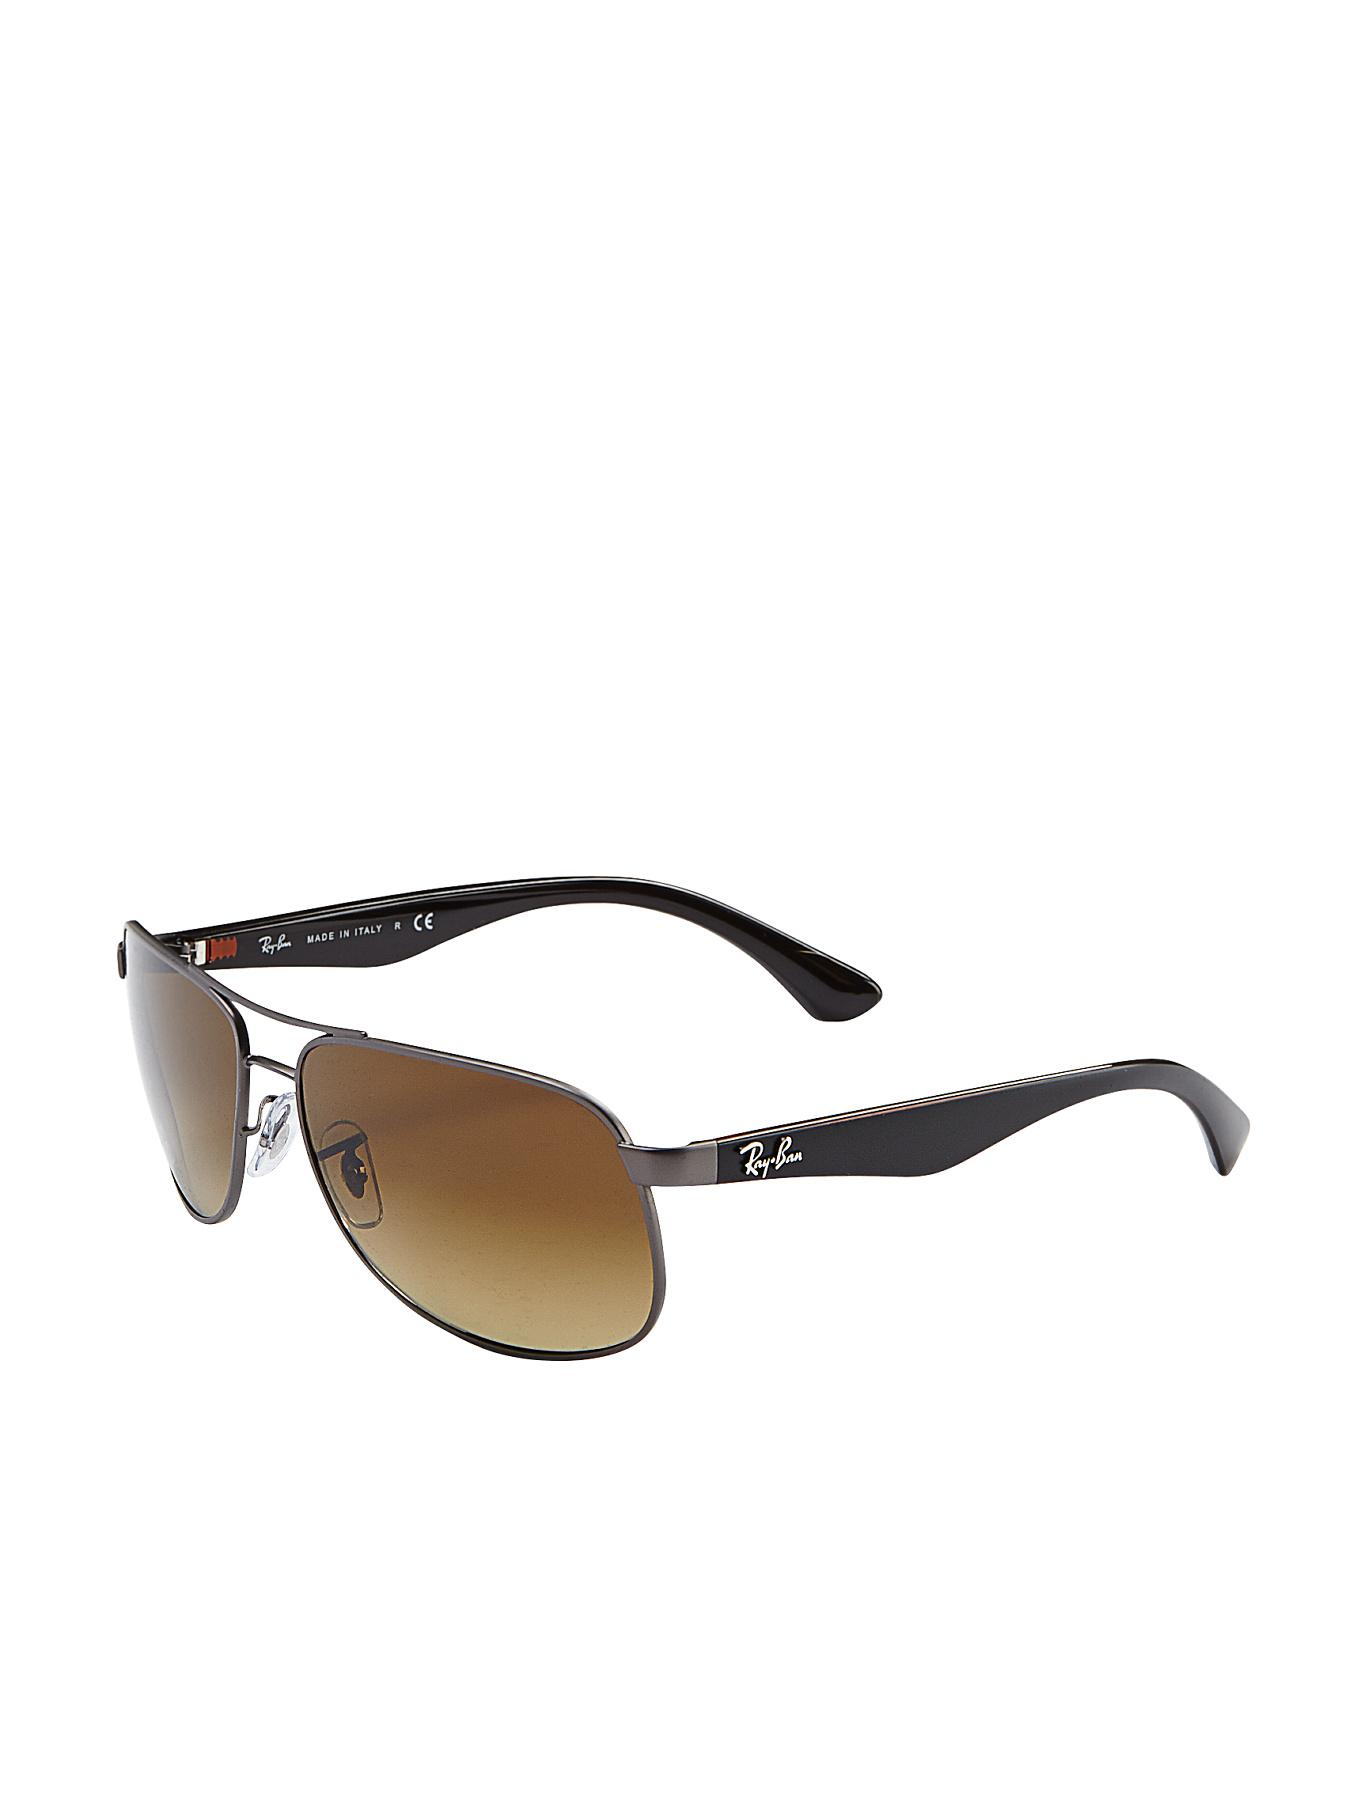 Ray-Ban Sunglasses - Brown - Brown, Brown